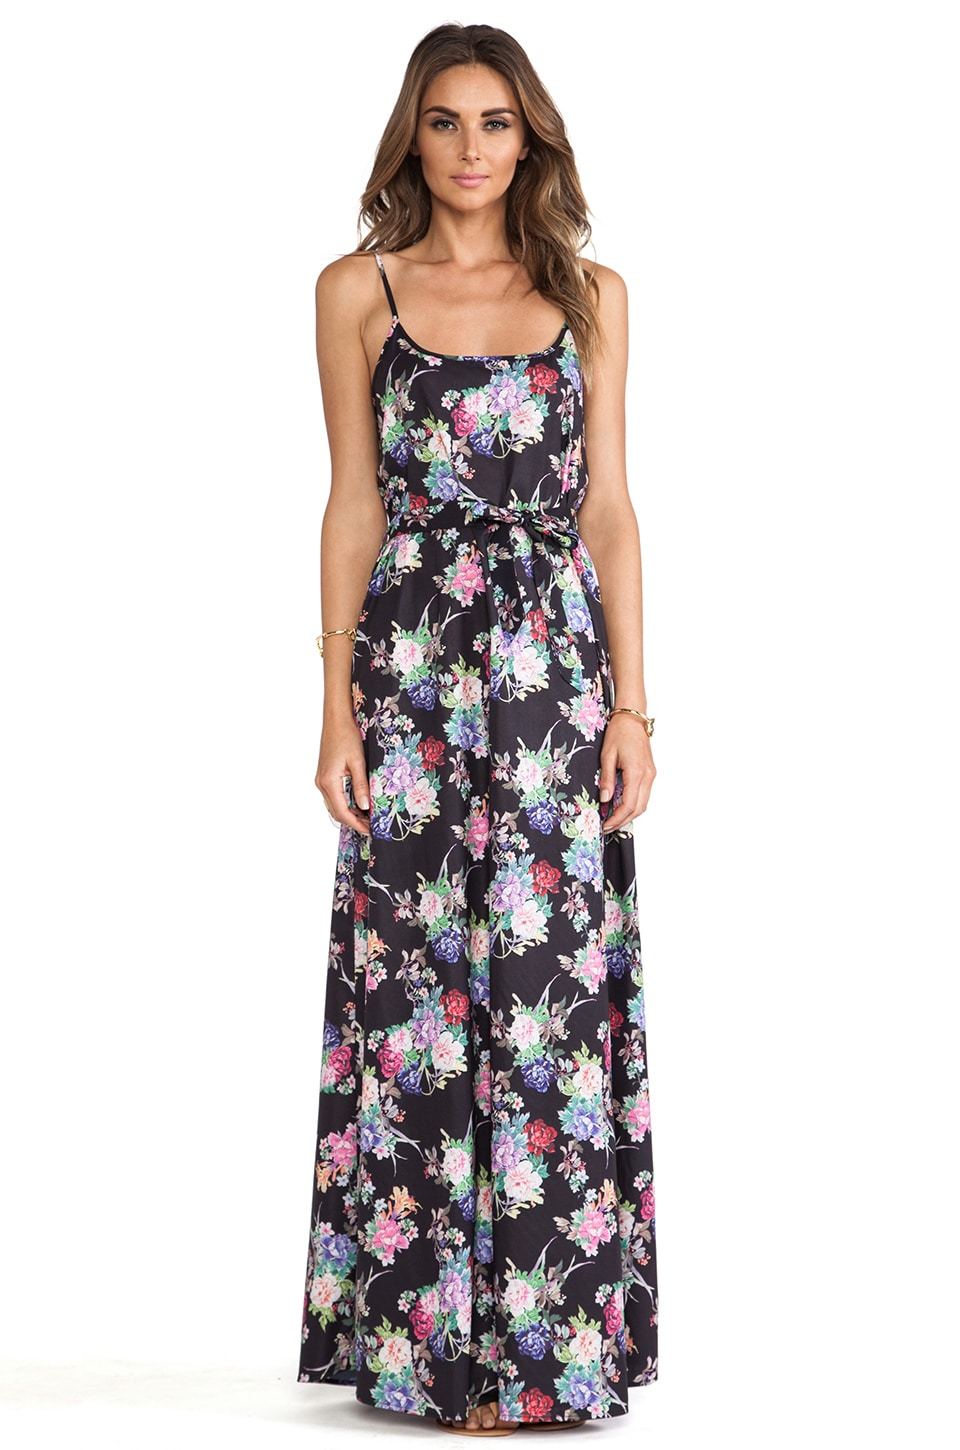 ISLA_CO Lush Layers Maxi Dress in Rosa Print